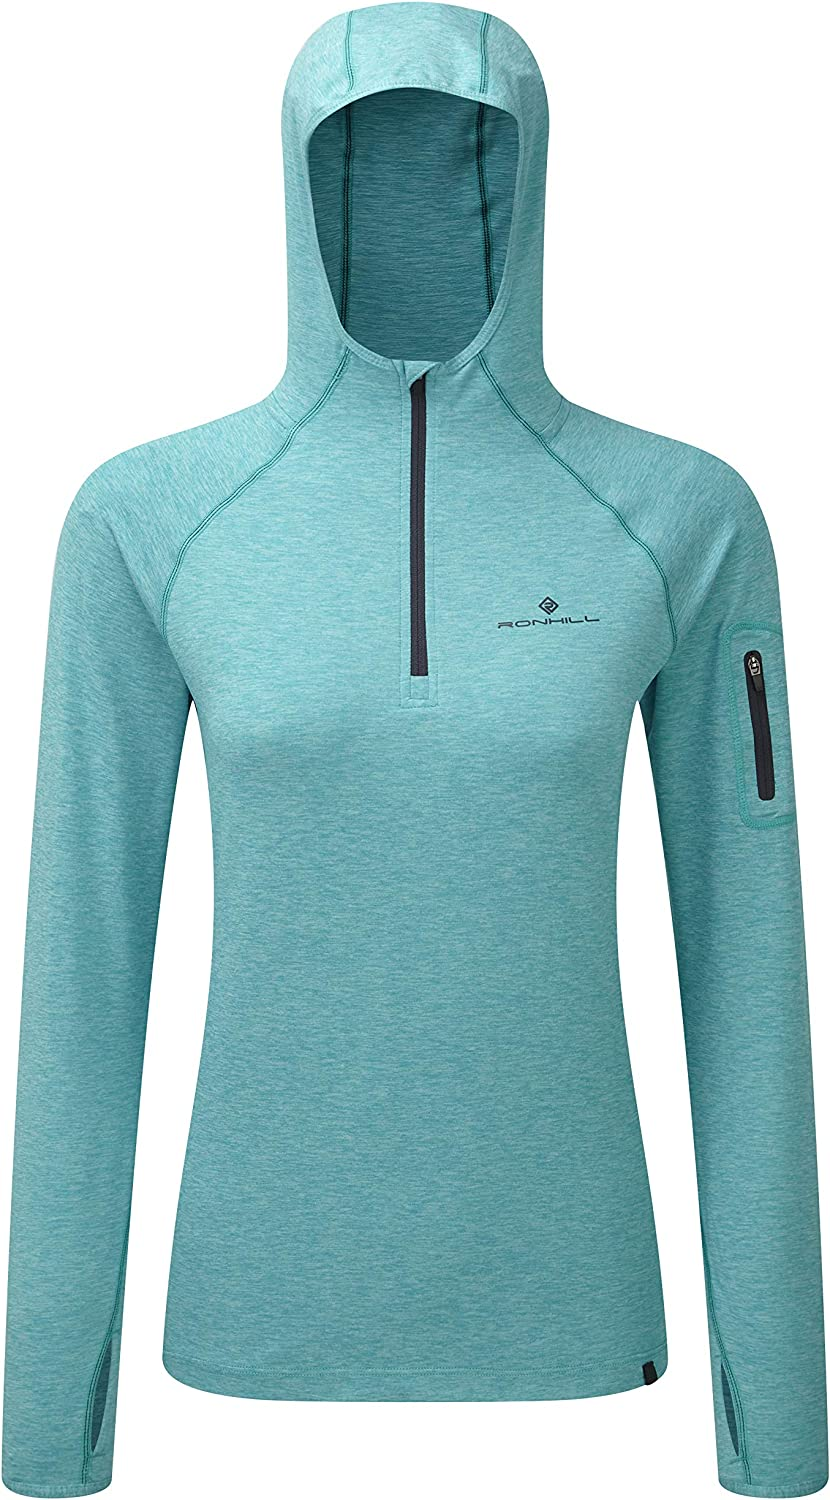 Ronhill Women's excellence Momentum Bombing new work Hoodie Workout